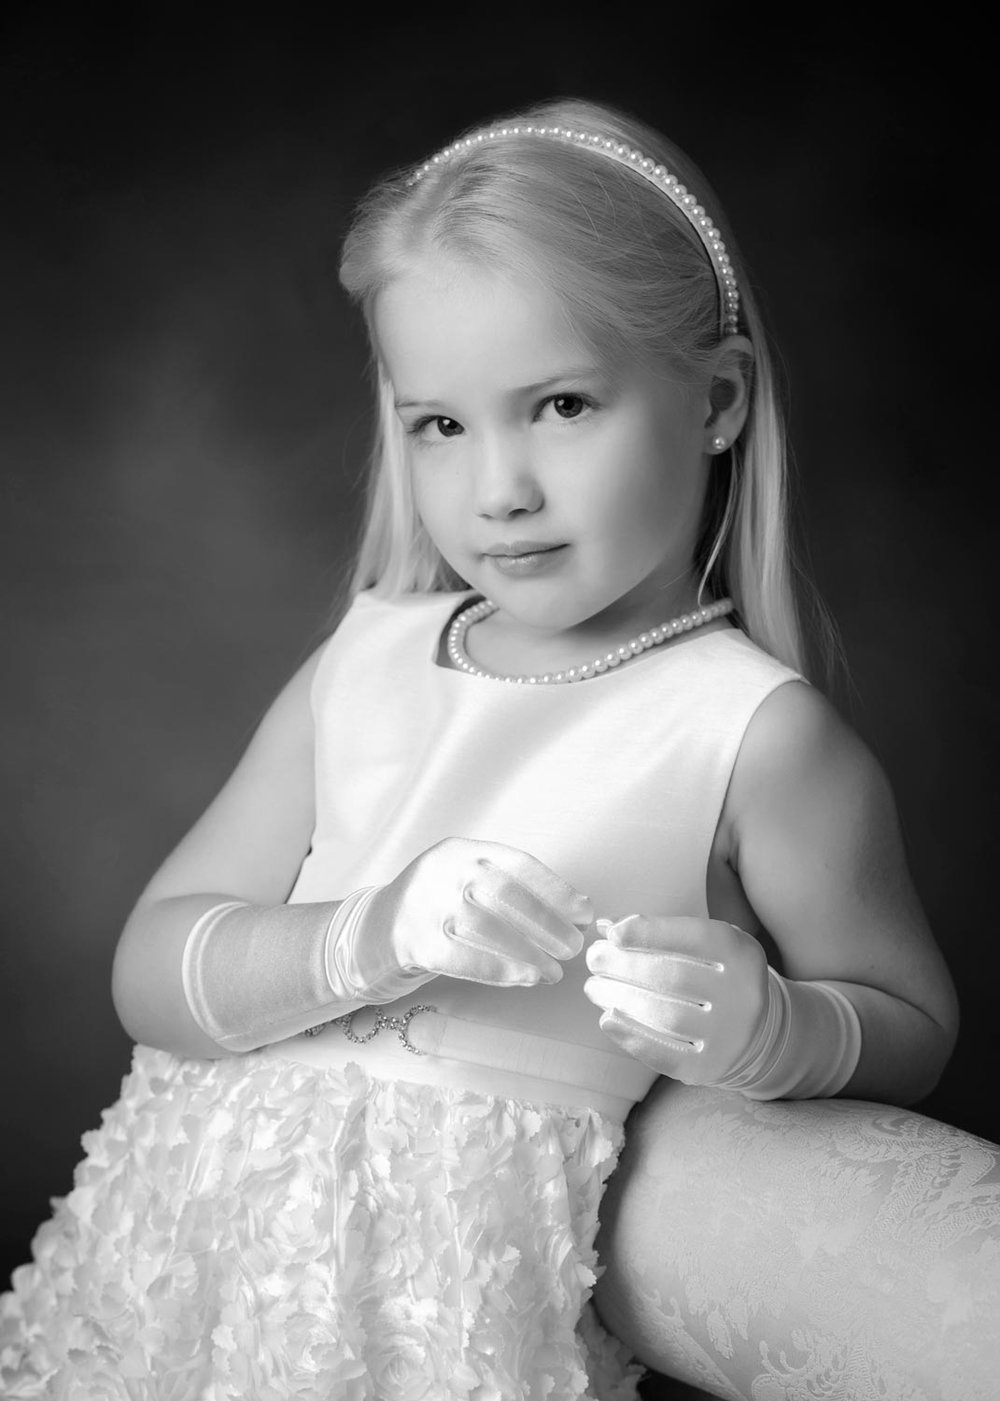 Studio_Walz_senior_childrens_by_Scott_Walz00.jpg